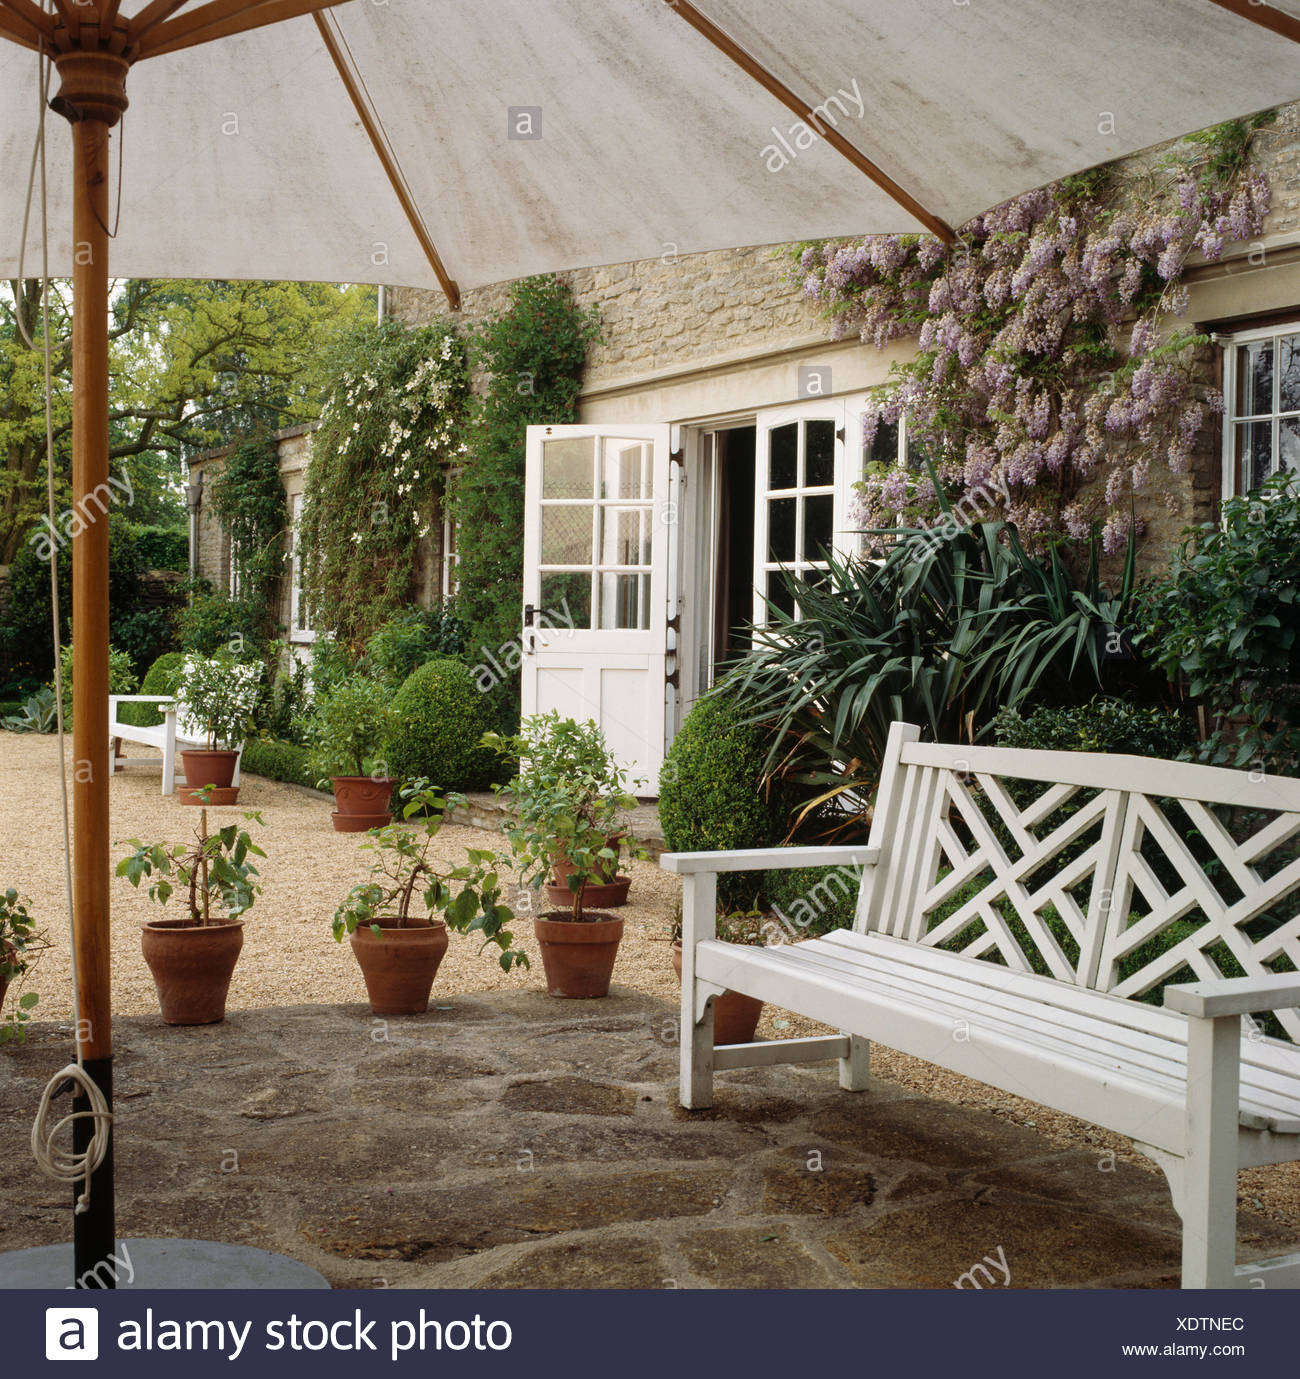 White bench on stone paved patio below large white umbrella in front of country house with pink climbing roses on the wall Stock Photo